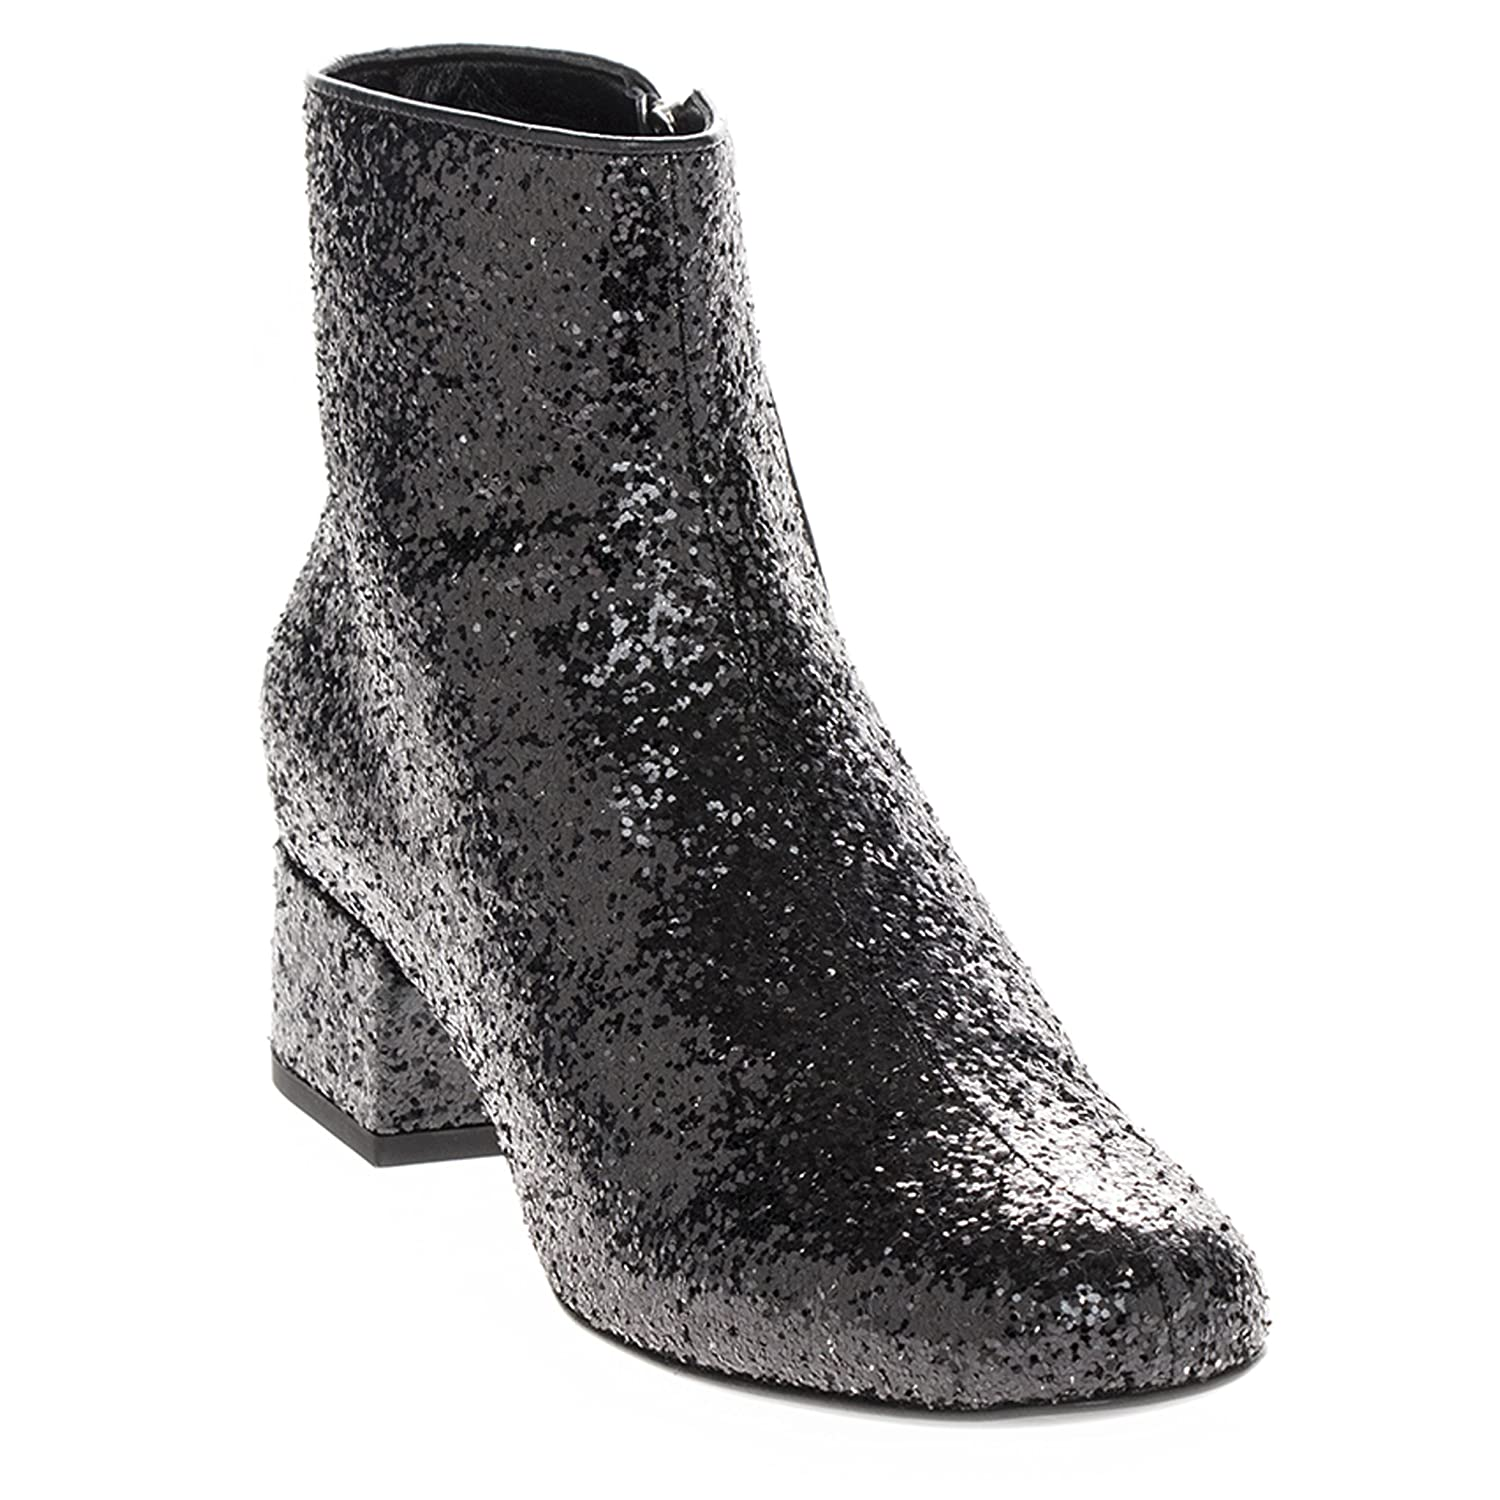 00a9a93457f Amazon.com | Saint Laurent Women's Glitter-Finished Almond-Toe Ankle Boots  with Short Block Heel | Boots